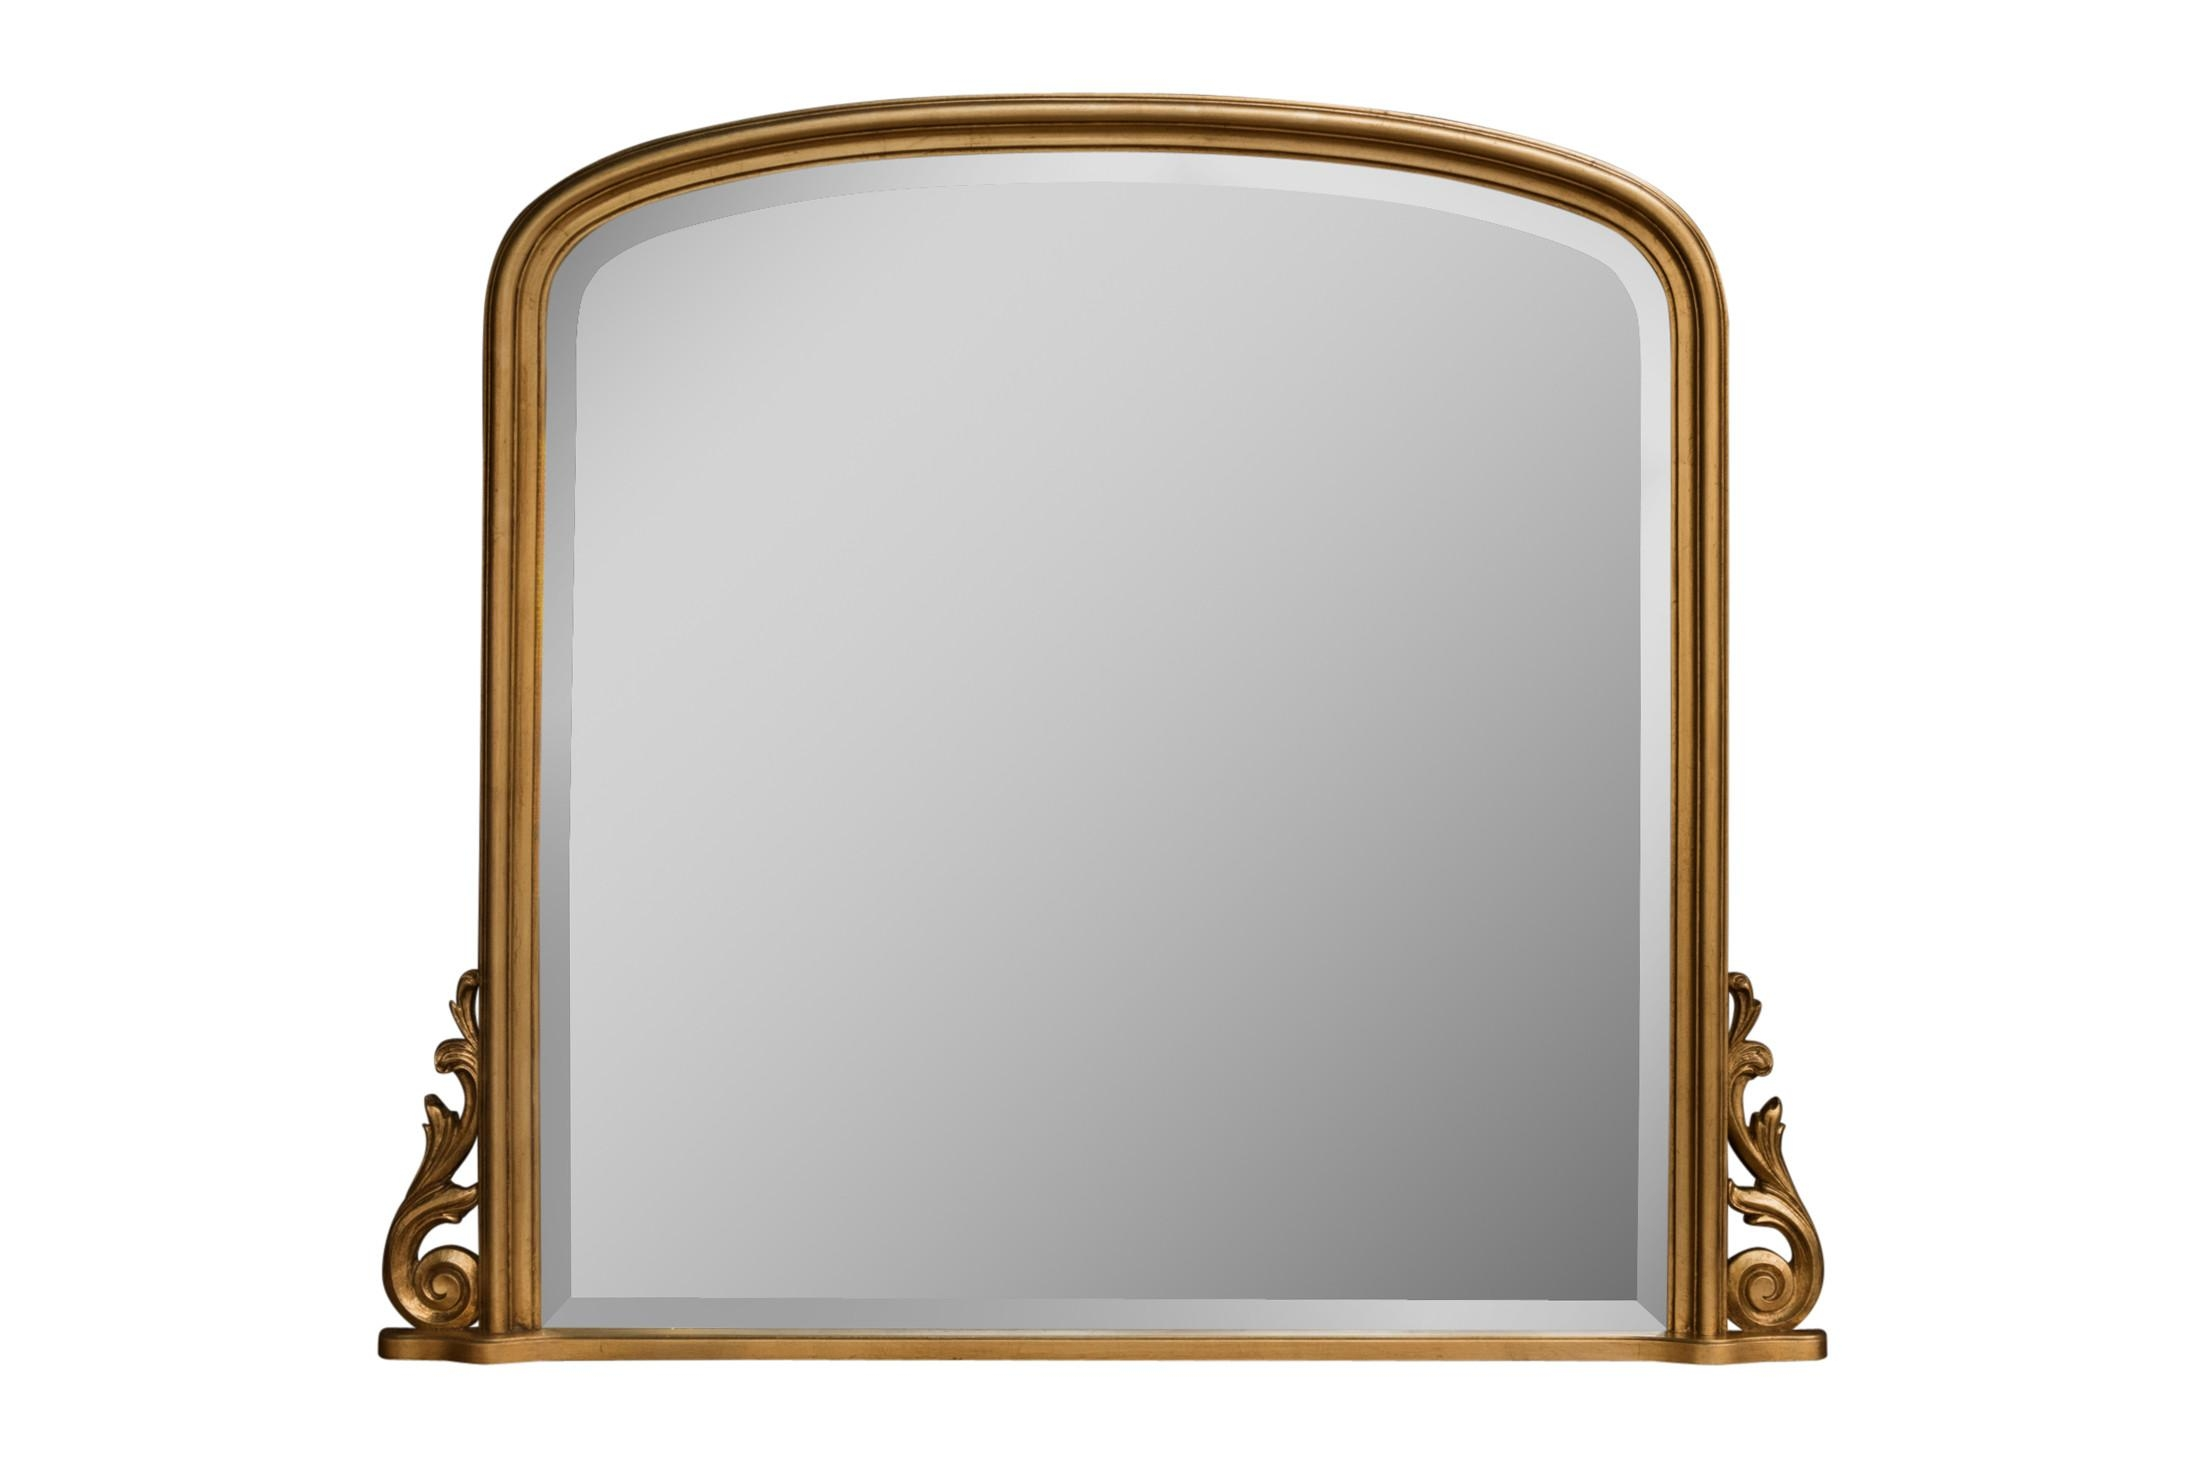 Libov4 Gold Overmantel | Gold Mirrors For Sale – Panfili Mirrors Throughout Gold Arch Mirror (View 18 of 20)